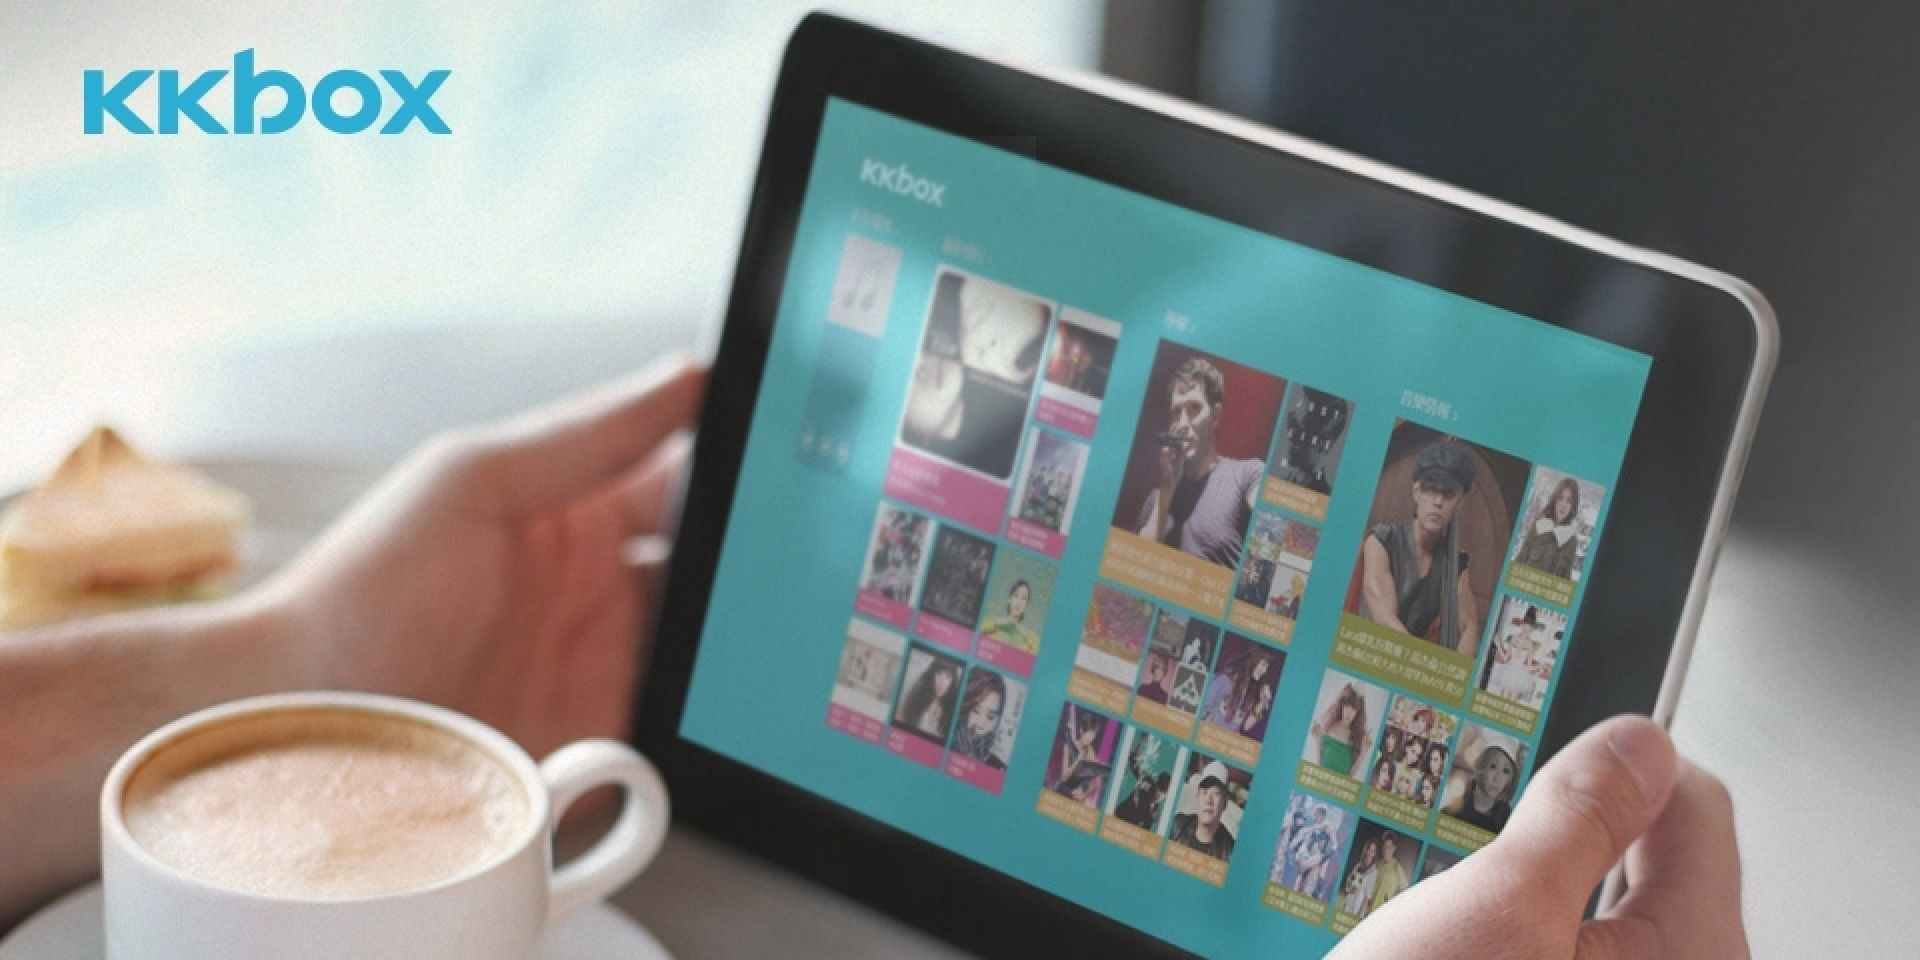 Music streaming platform KKBOX studied listener habits — here's what they found